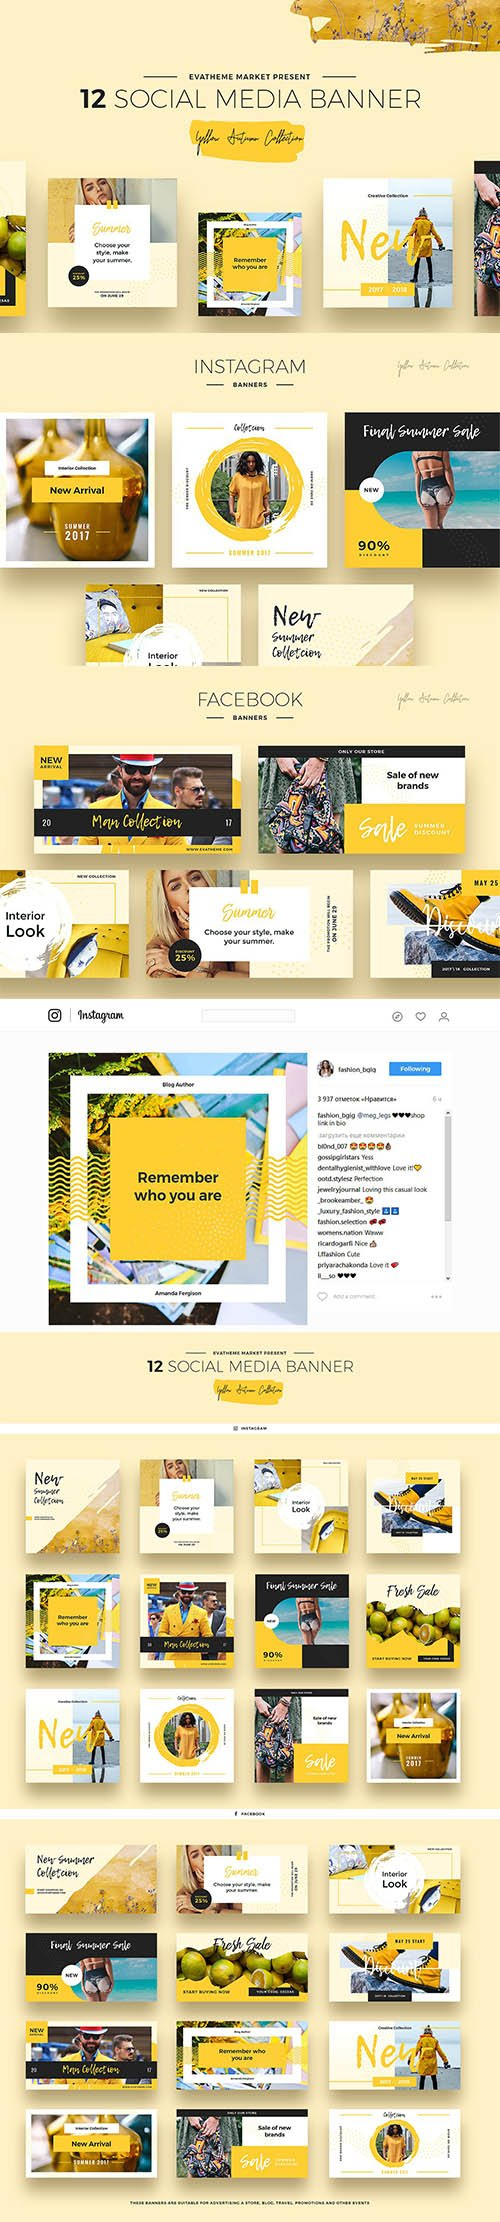 Yellow Autumn Social Media Designs - CM 1616795